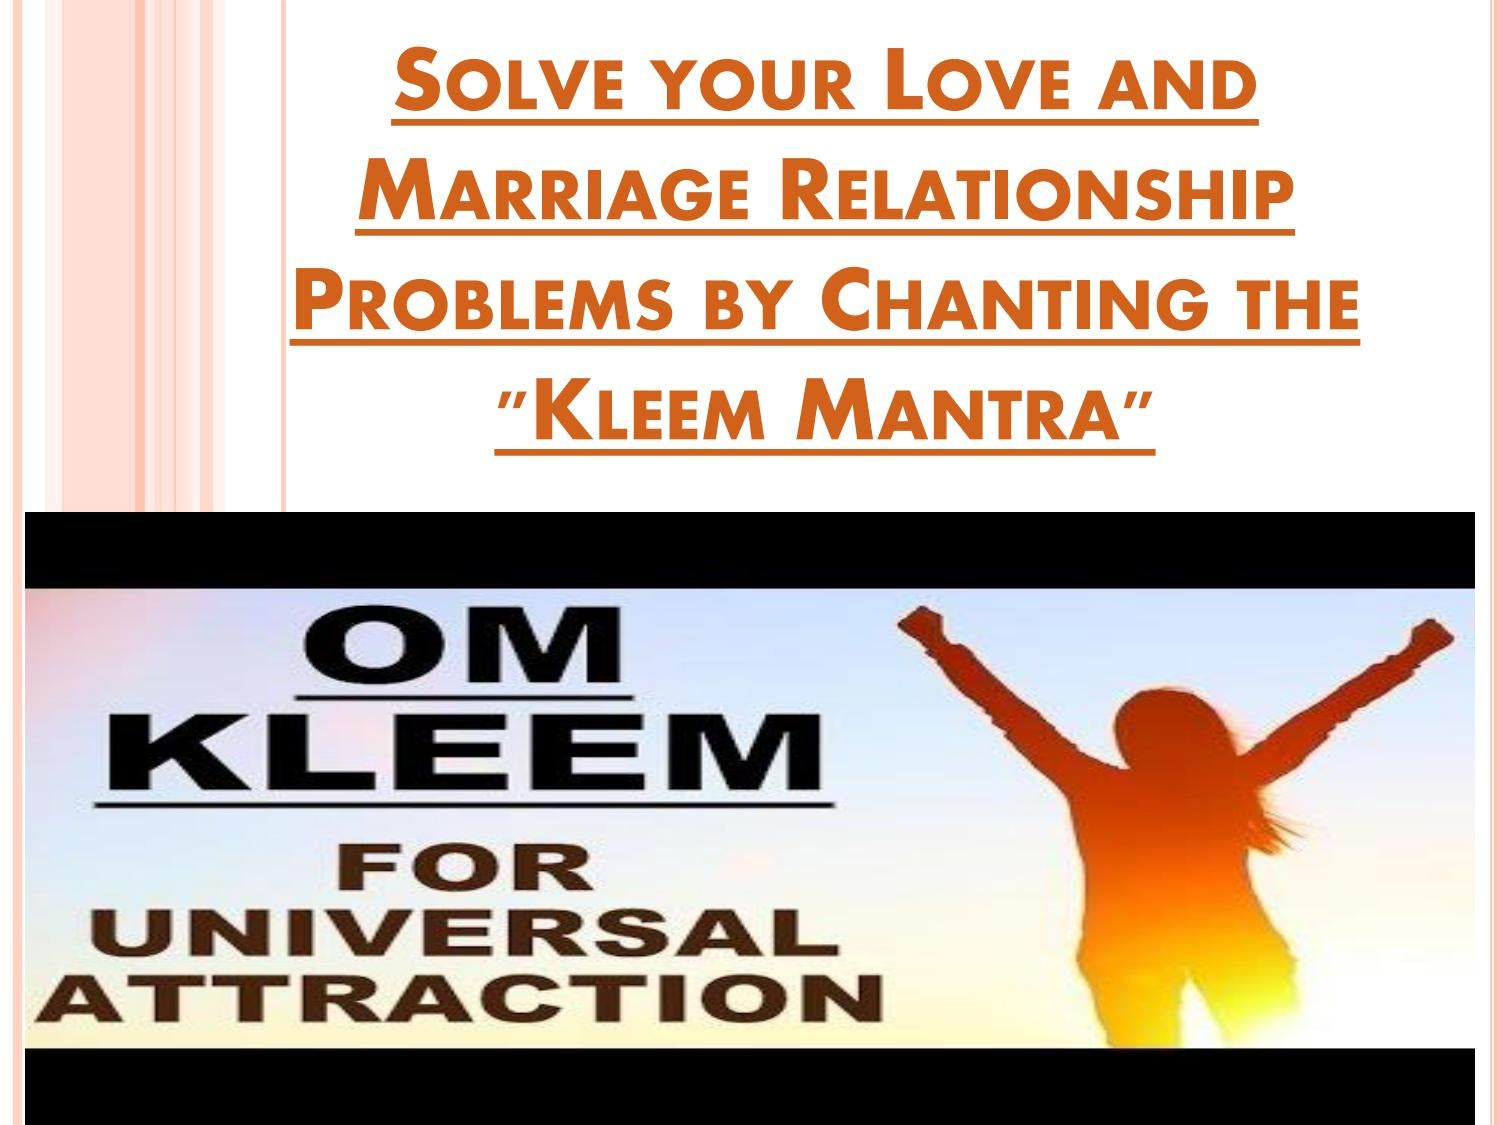 Solve your Love and Marriage Relationship Problems by Chanting the